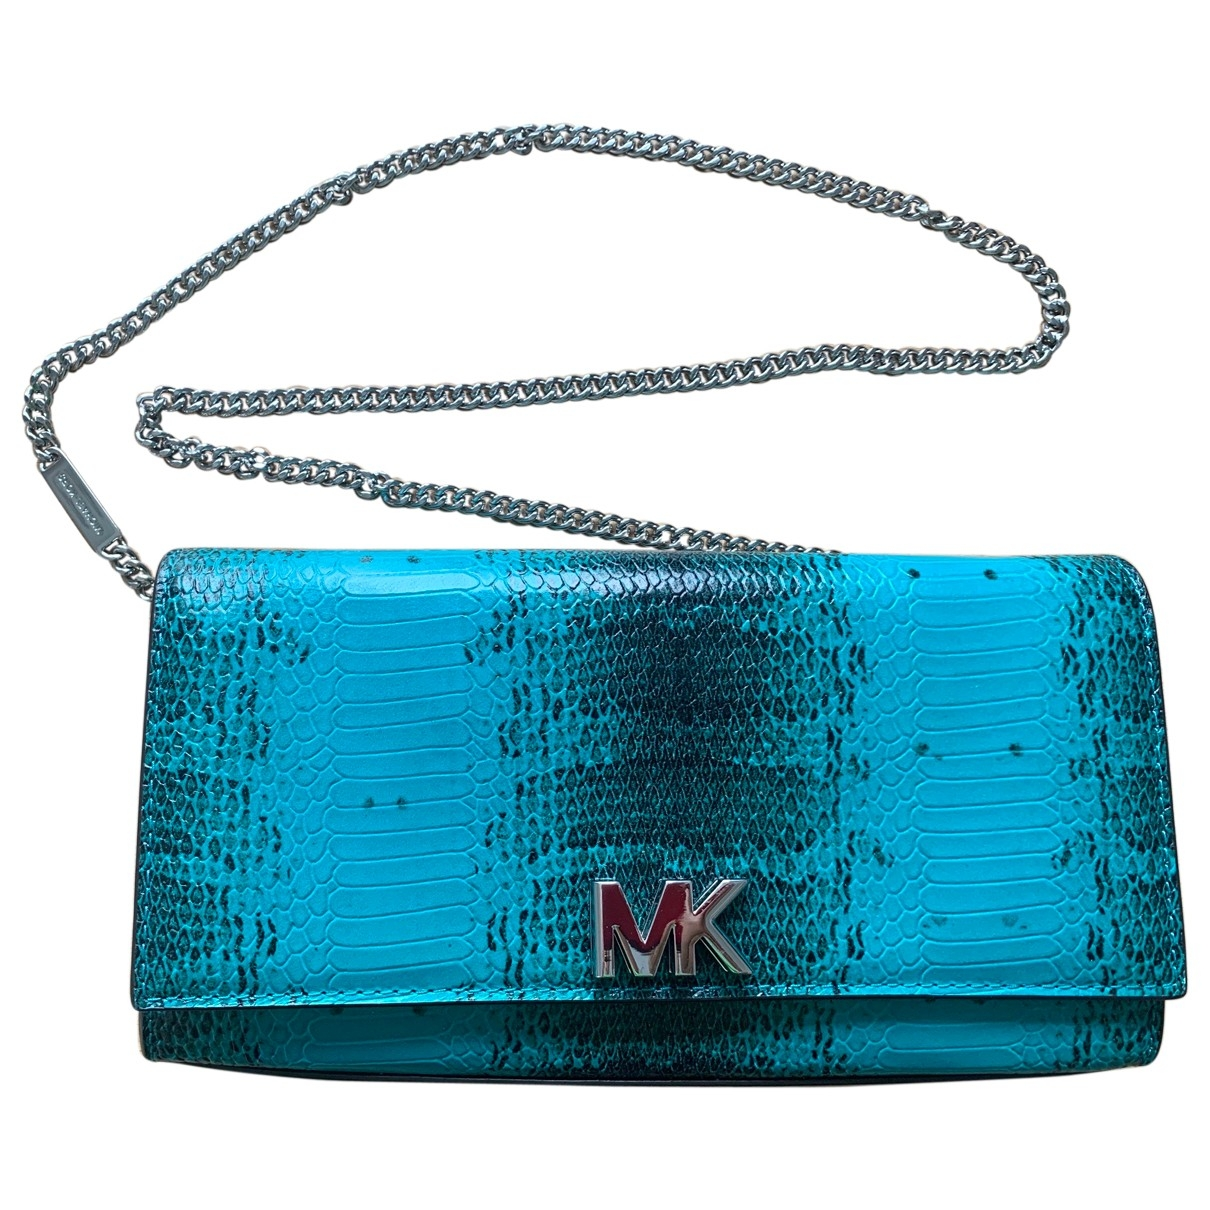 Michael Kors \N Turquoise Leather handbag for Women \N